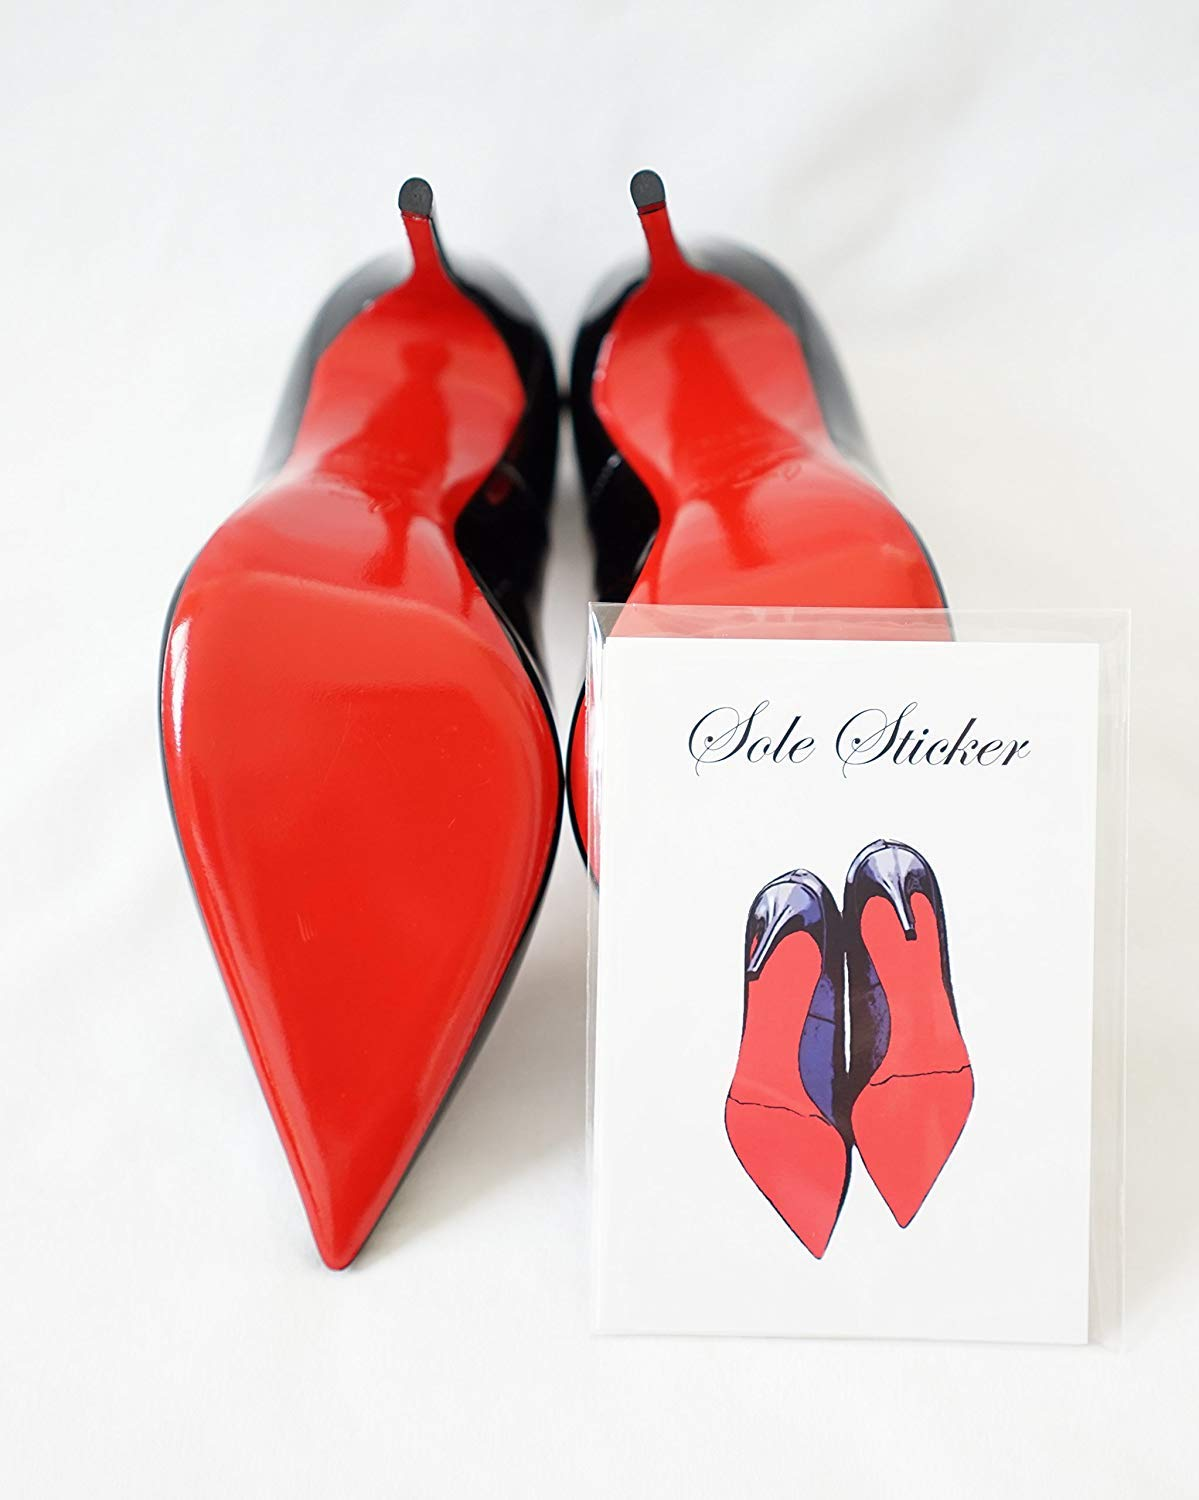 Sole Sticker - Crystal Clear Sole Protector for Christian Louboutin Heels